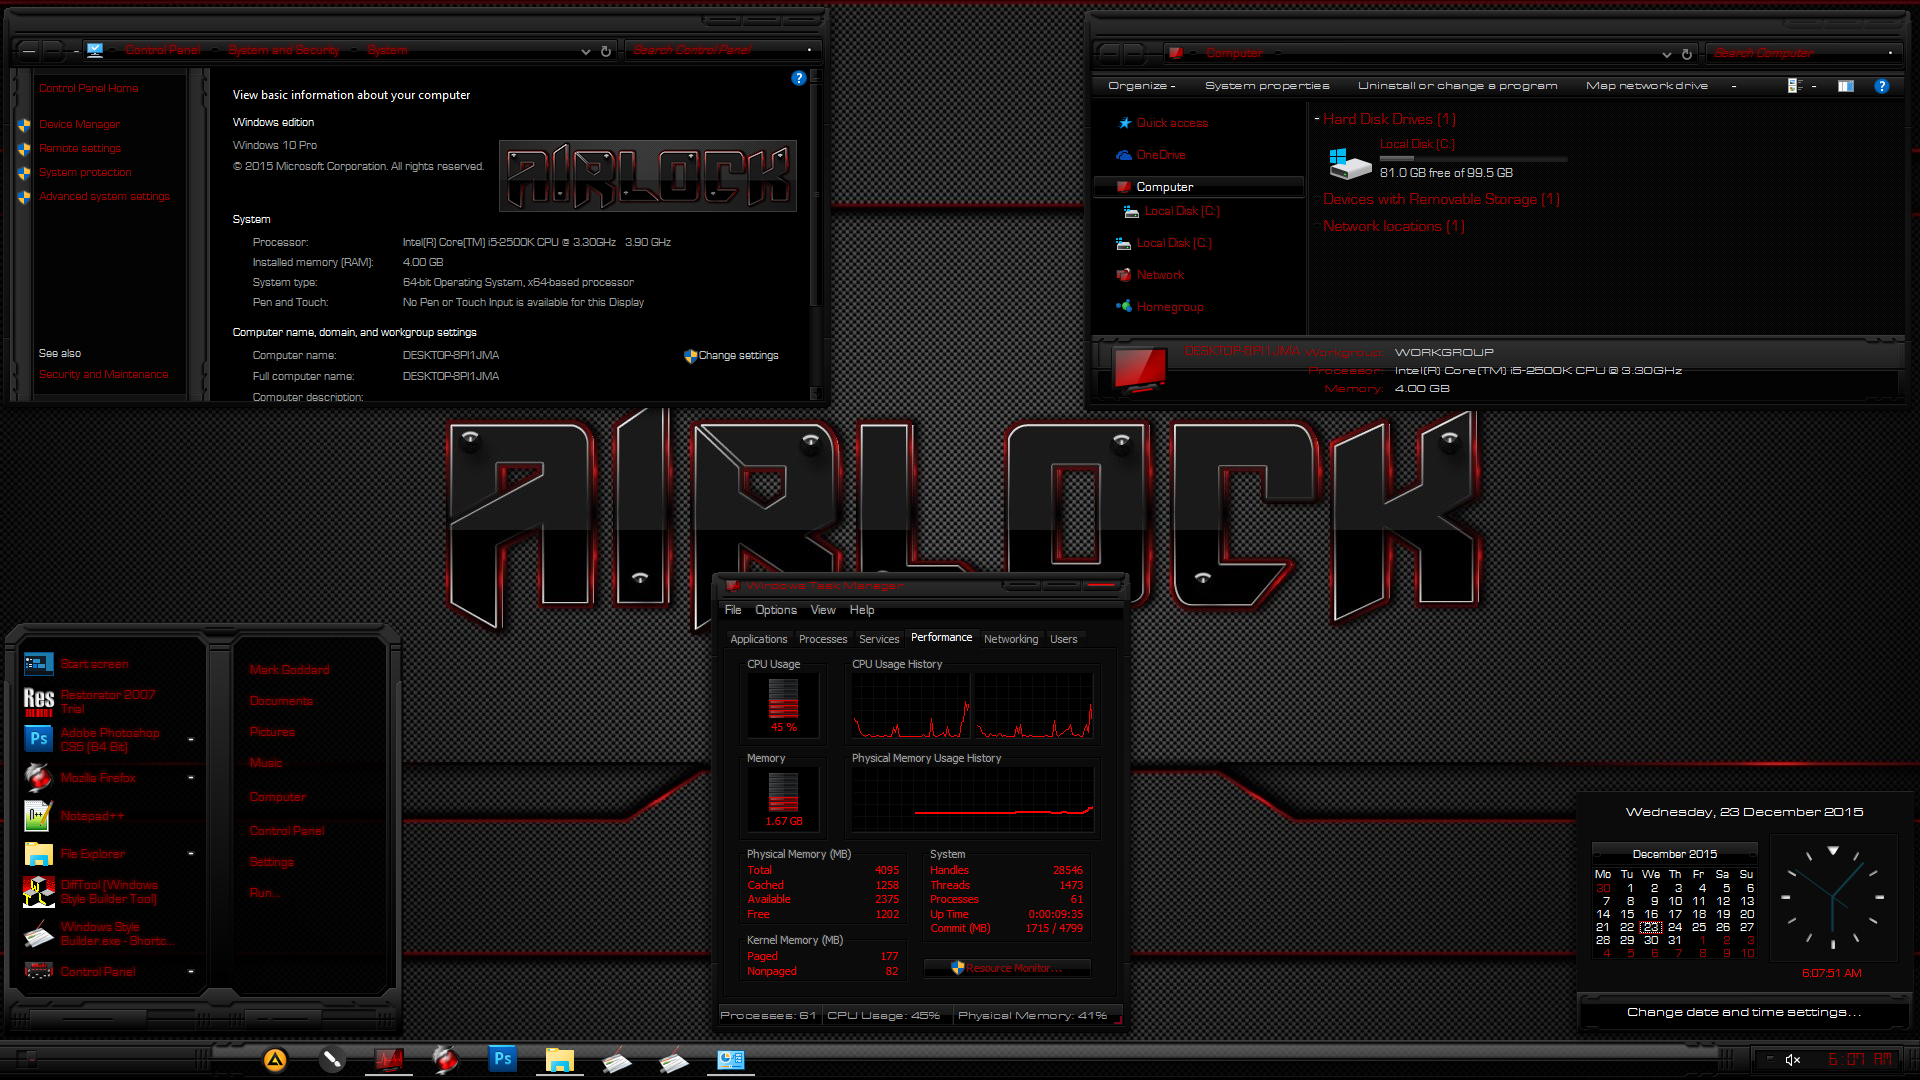 Airlock Windows 10 Th2 Aka 1511 Aka 10586 Only